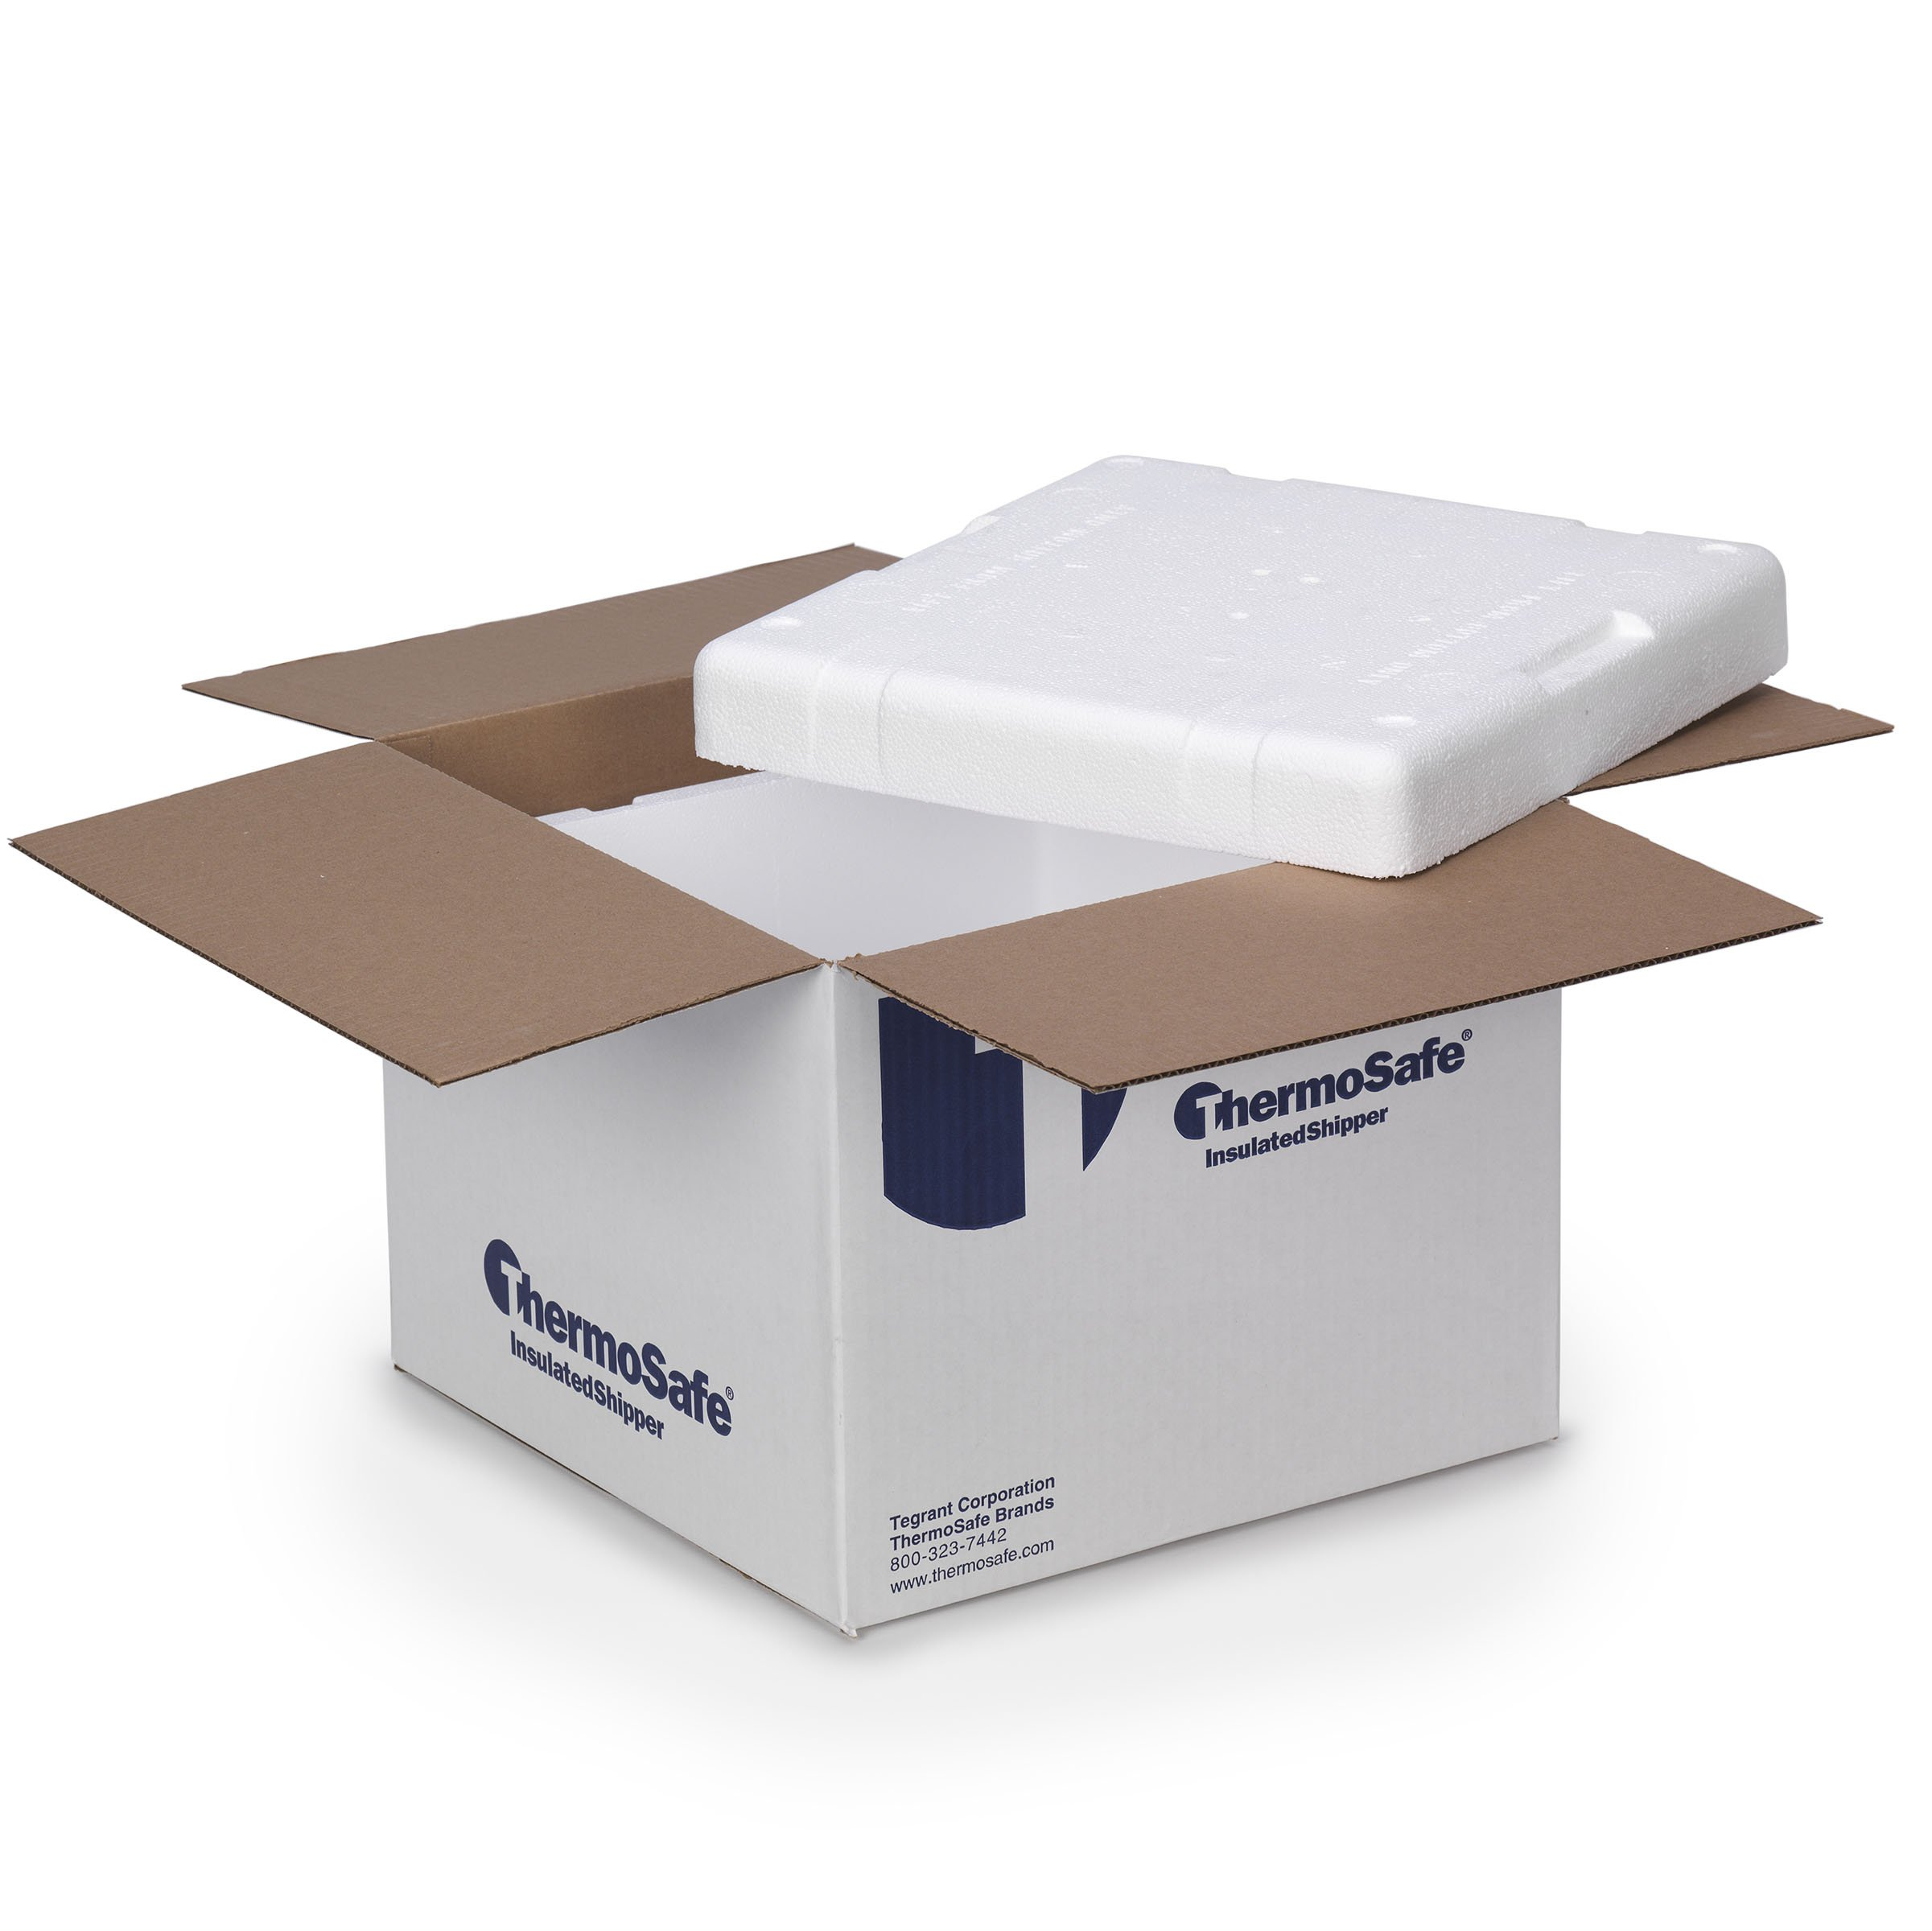 Thermosafe 413 Insulated Shippers (Case of 12)